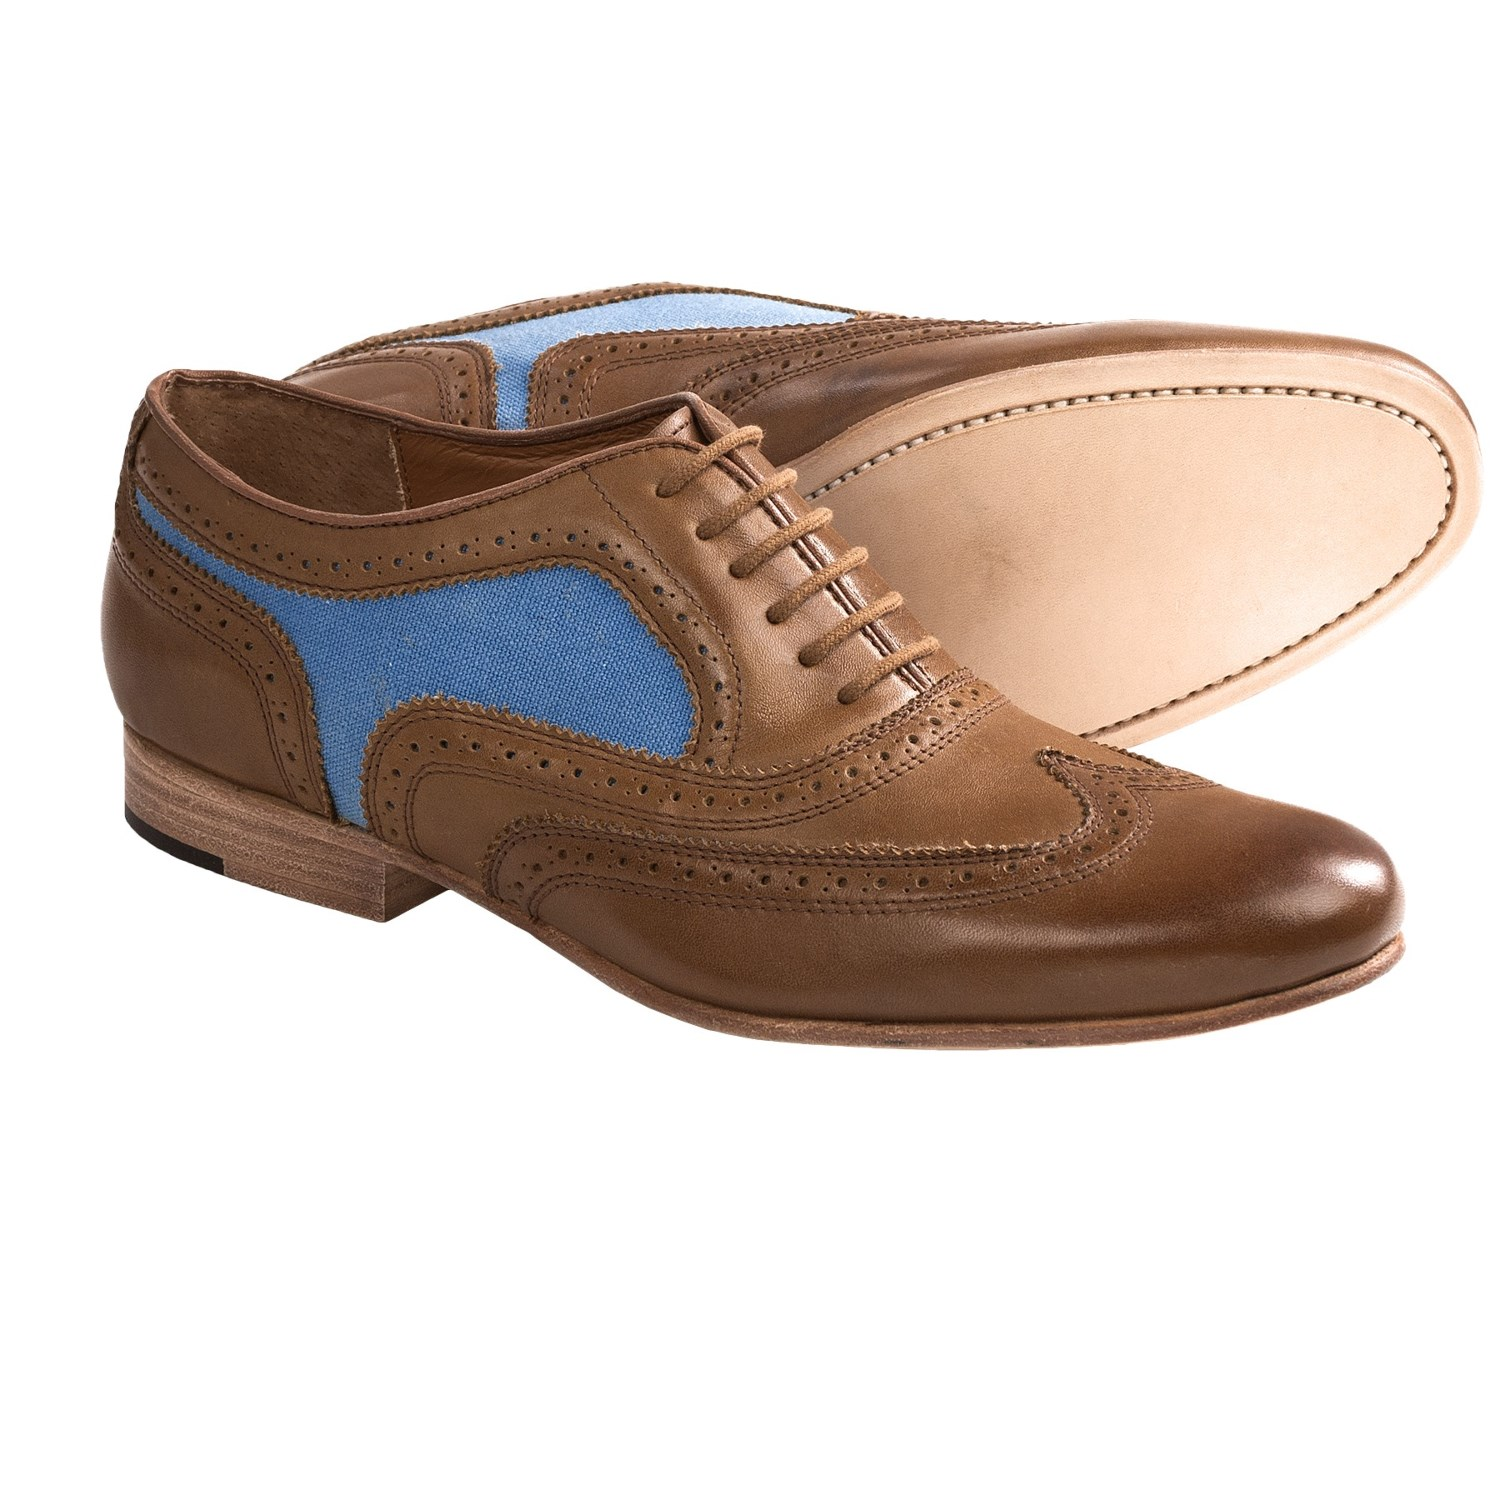 j d fisk wingtip shoes leather for save 60